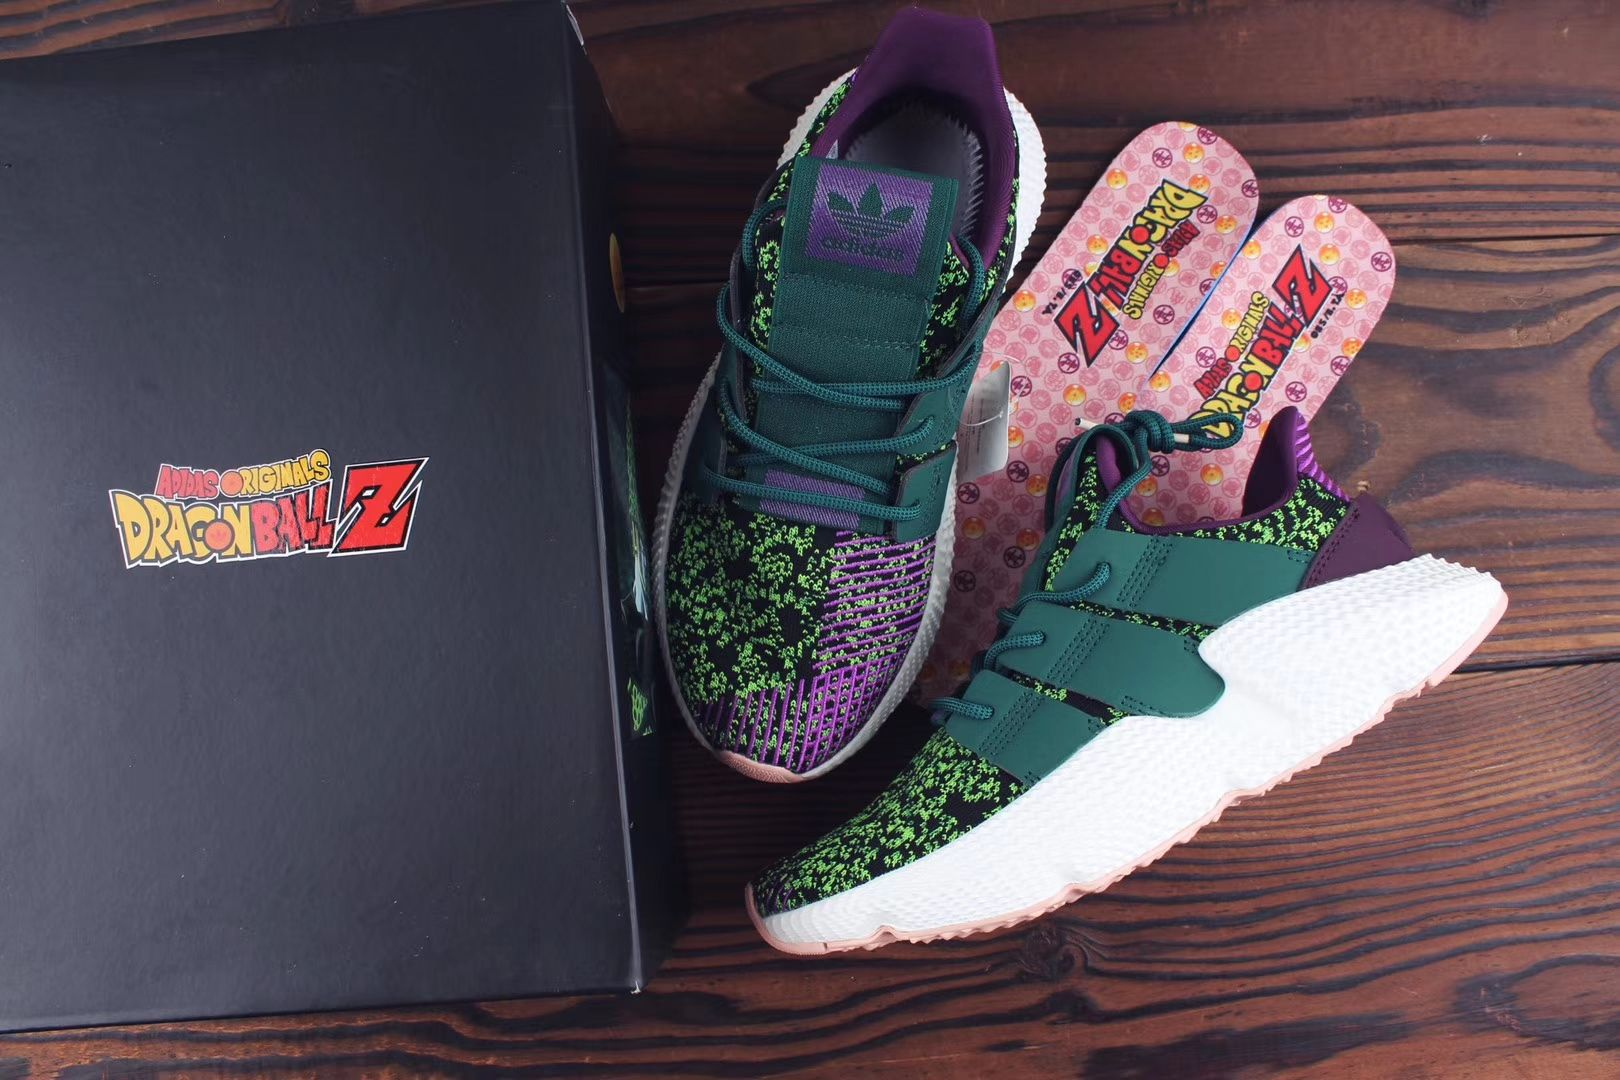 df8e070f8e1 Dragon Ball Z x adidas Prophere Cell Detail Info